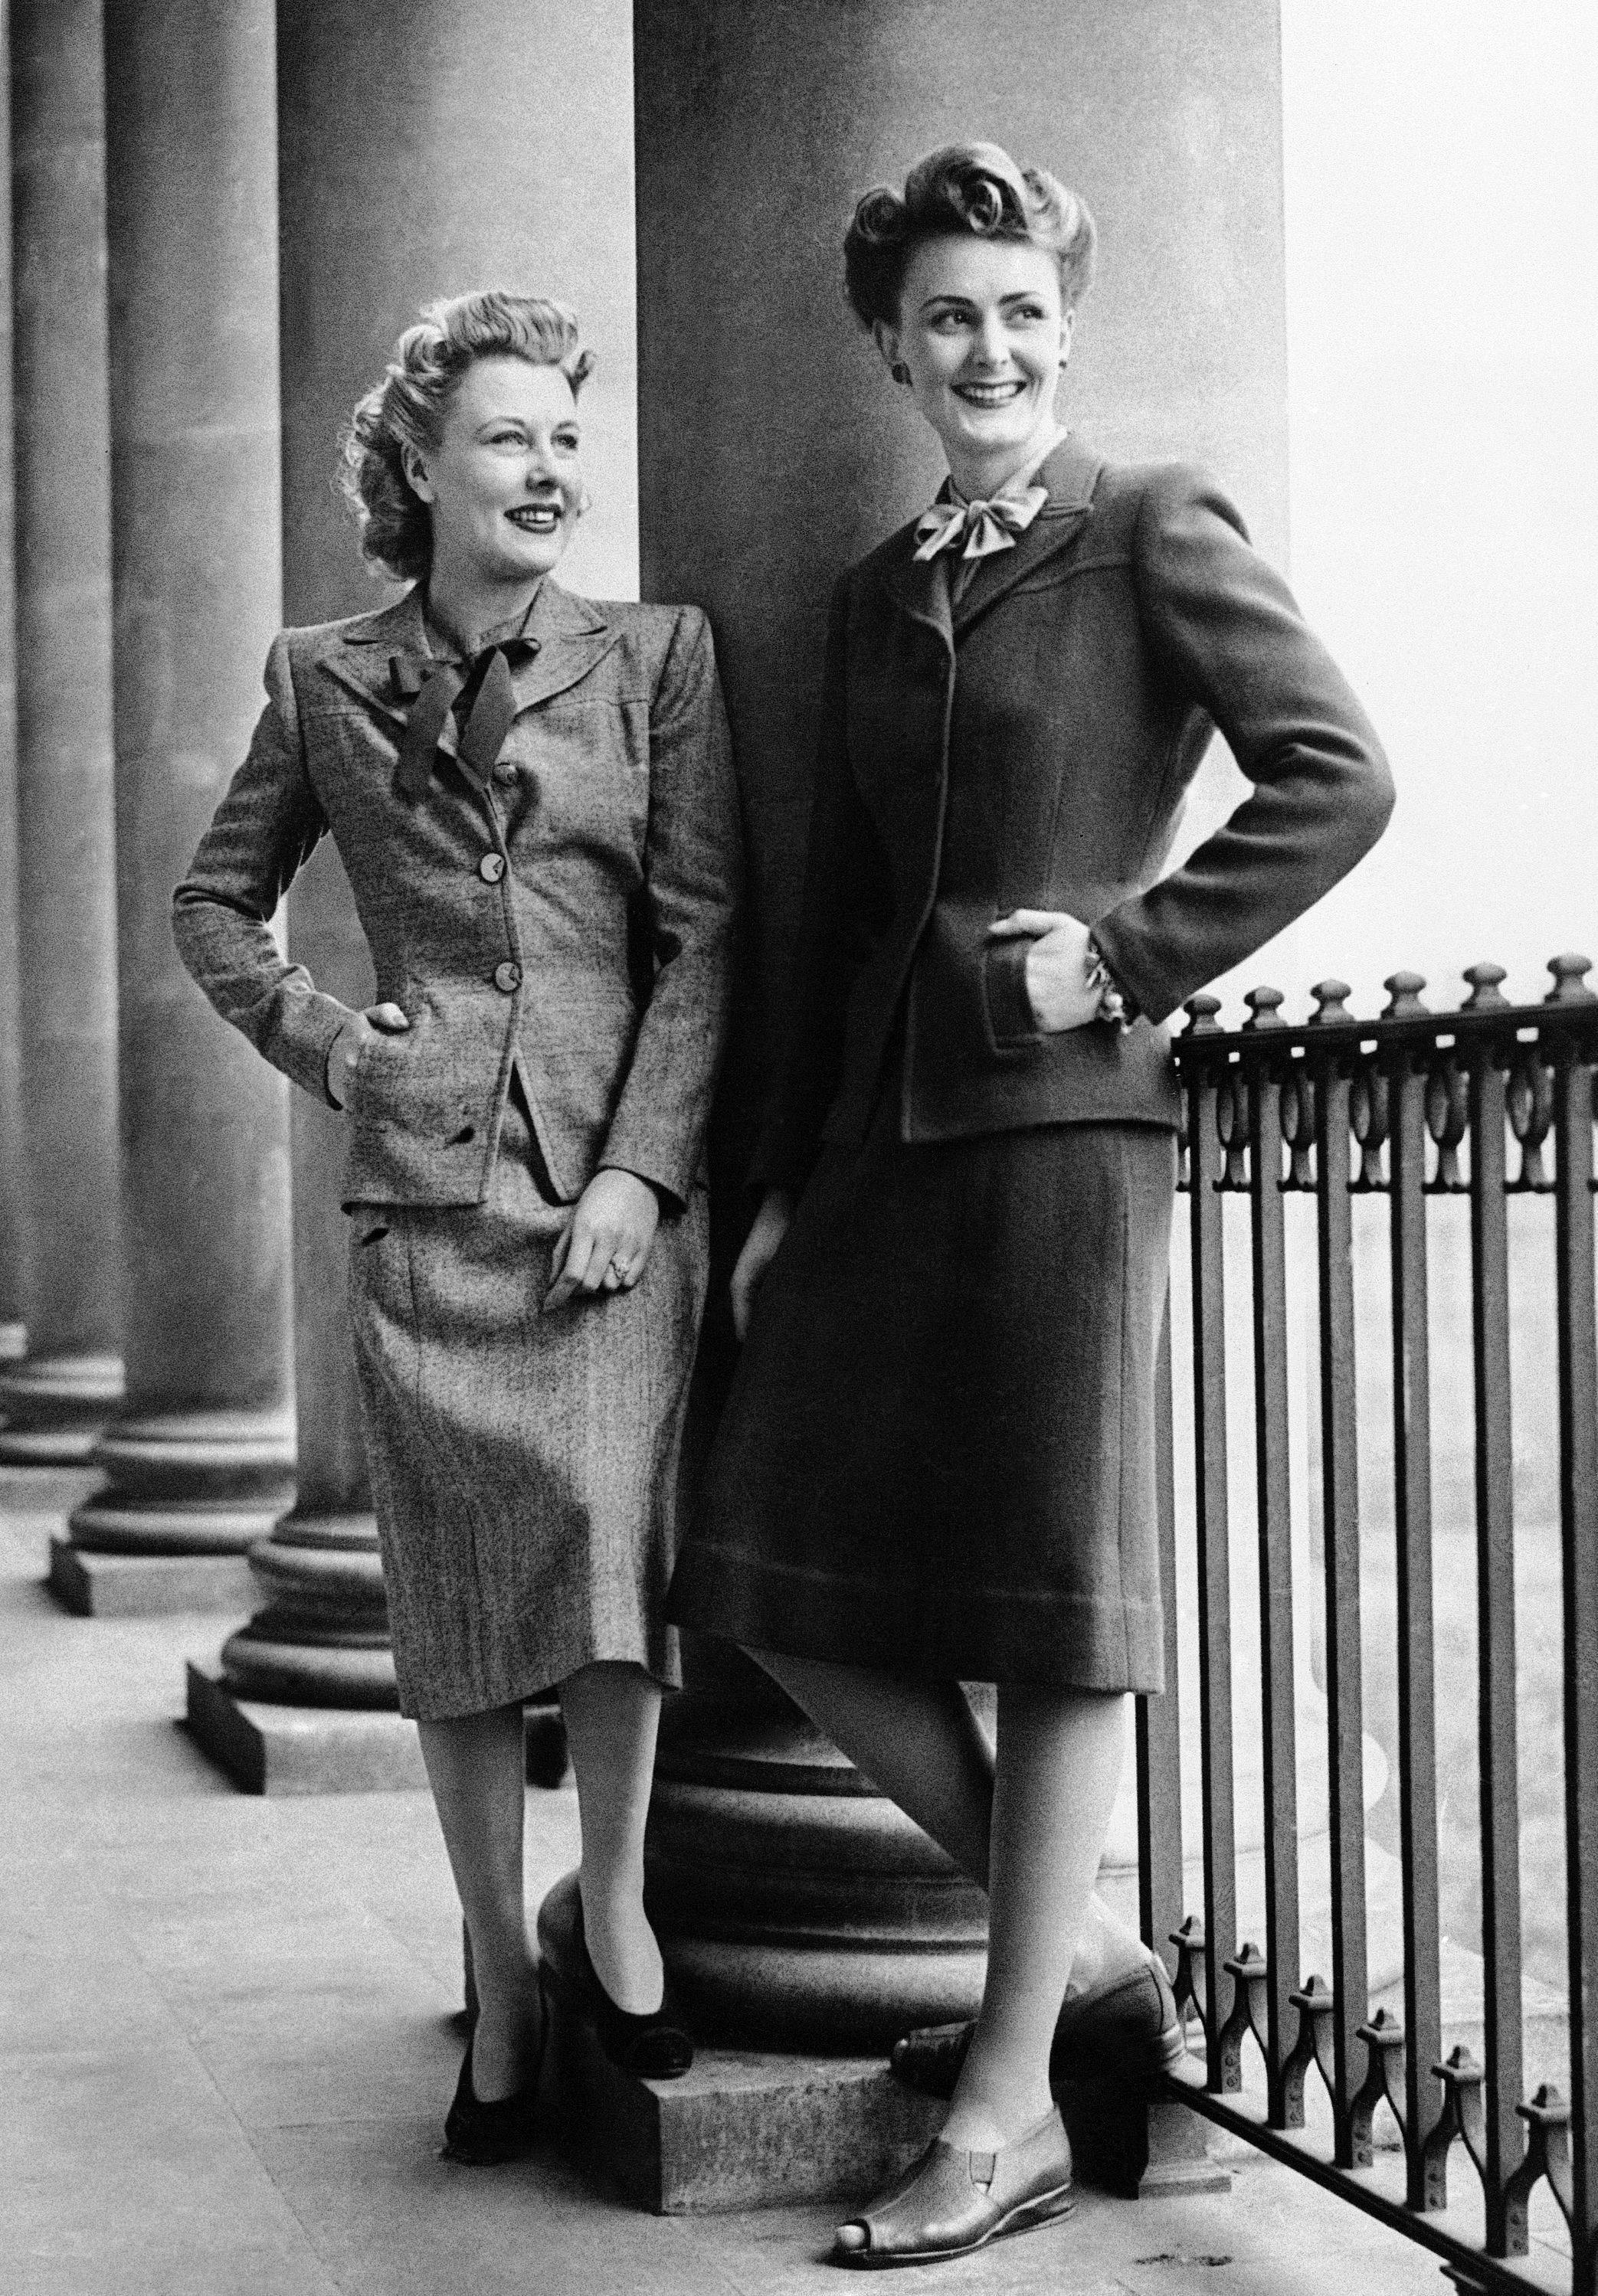 Britain's fashion experts submit their designs to the Board of Trade, which advises changes to facilitate mass production of the clothes. In photo at left: an original costume, left, as submitted by designers, and the approved utility garment, right, which shows little difference between the two suits. At right: the original, left, compared with the smart utility counterpart, right, which was approved by the board at a fashion show in London.